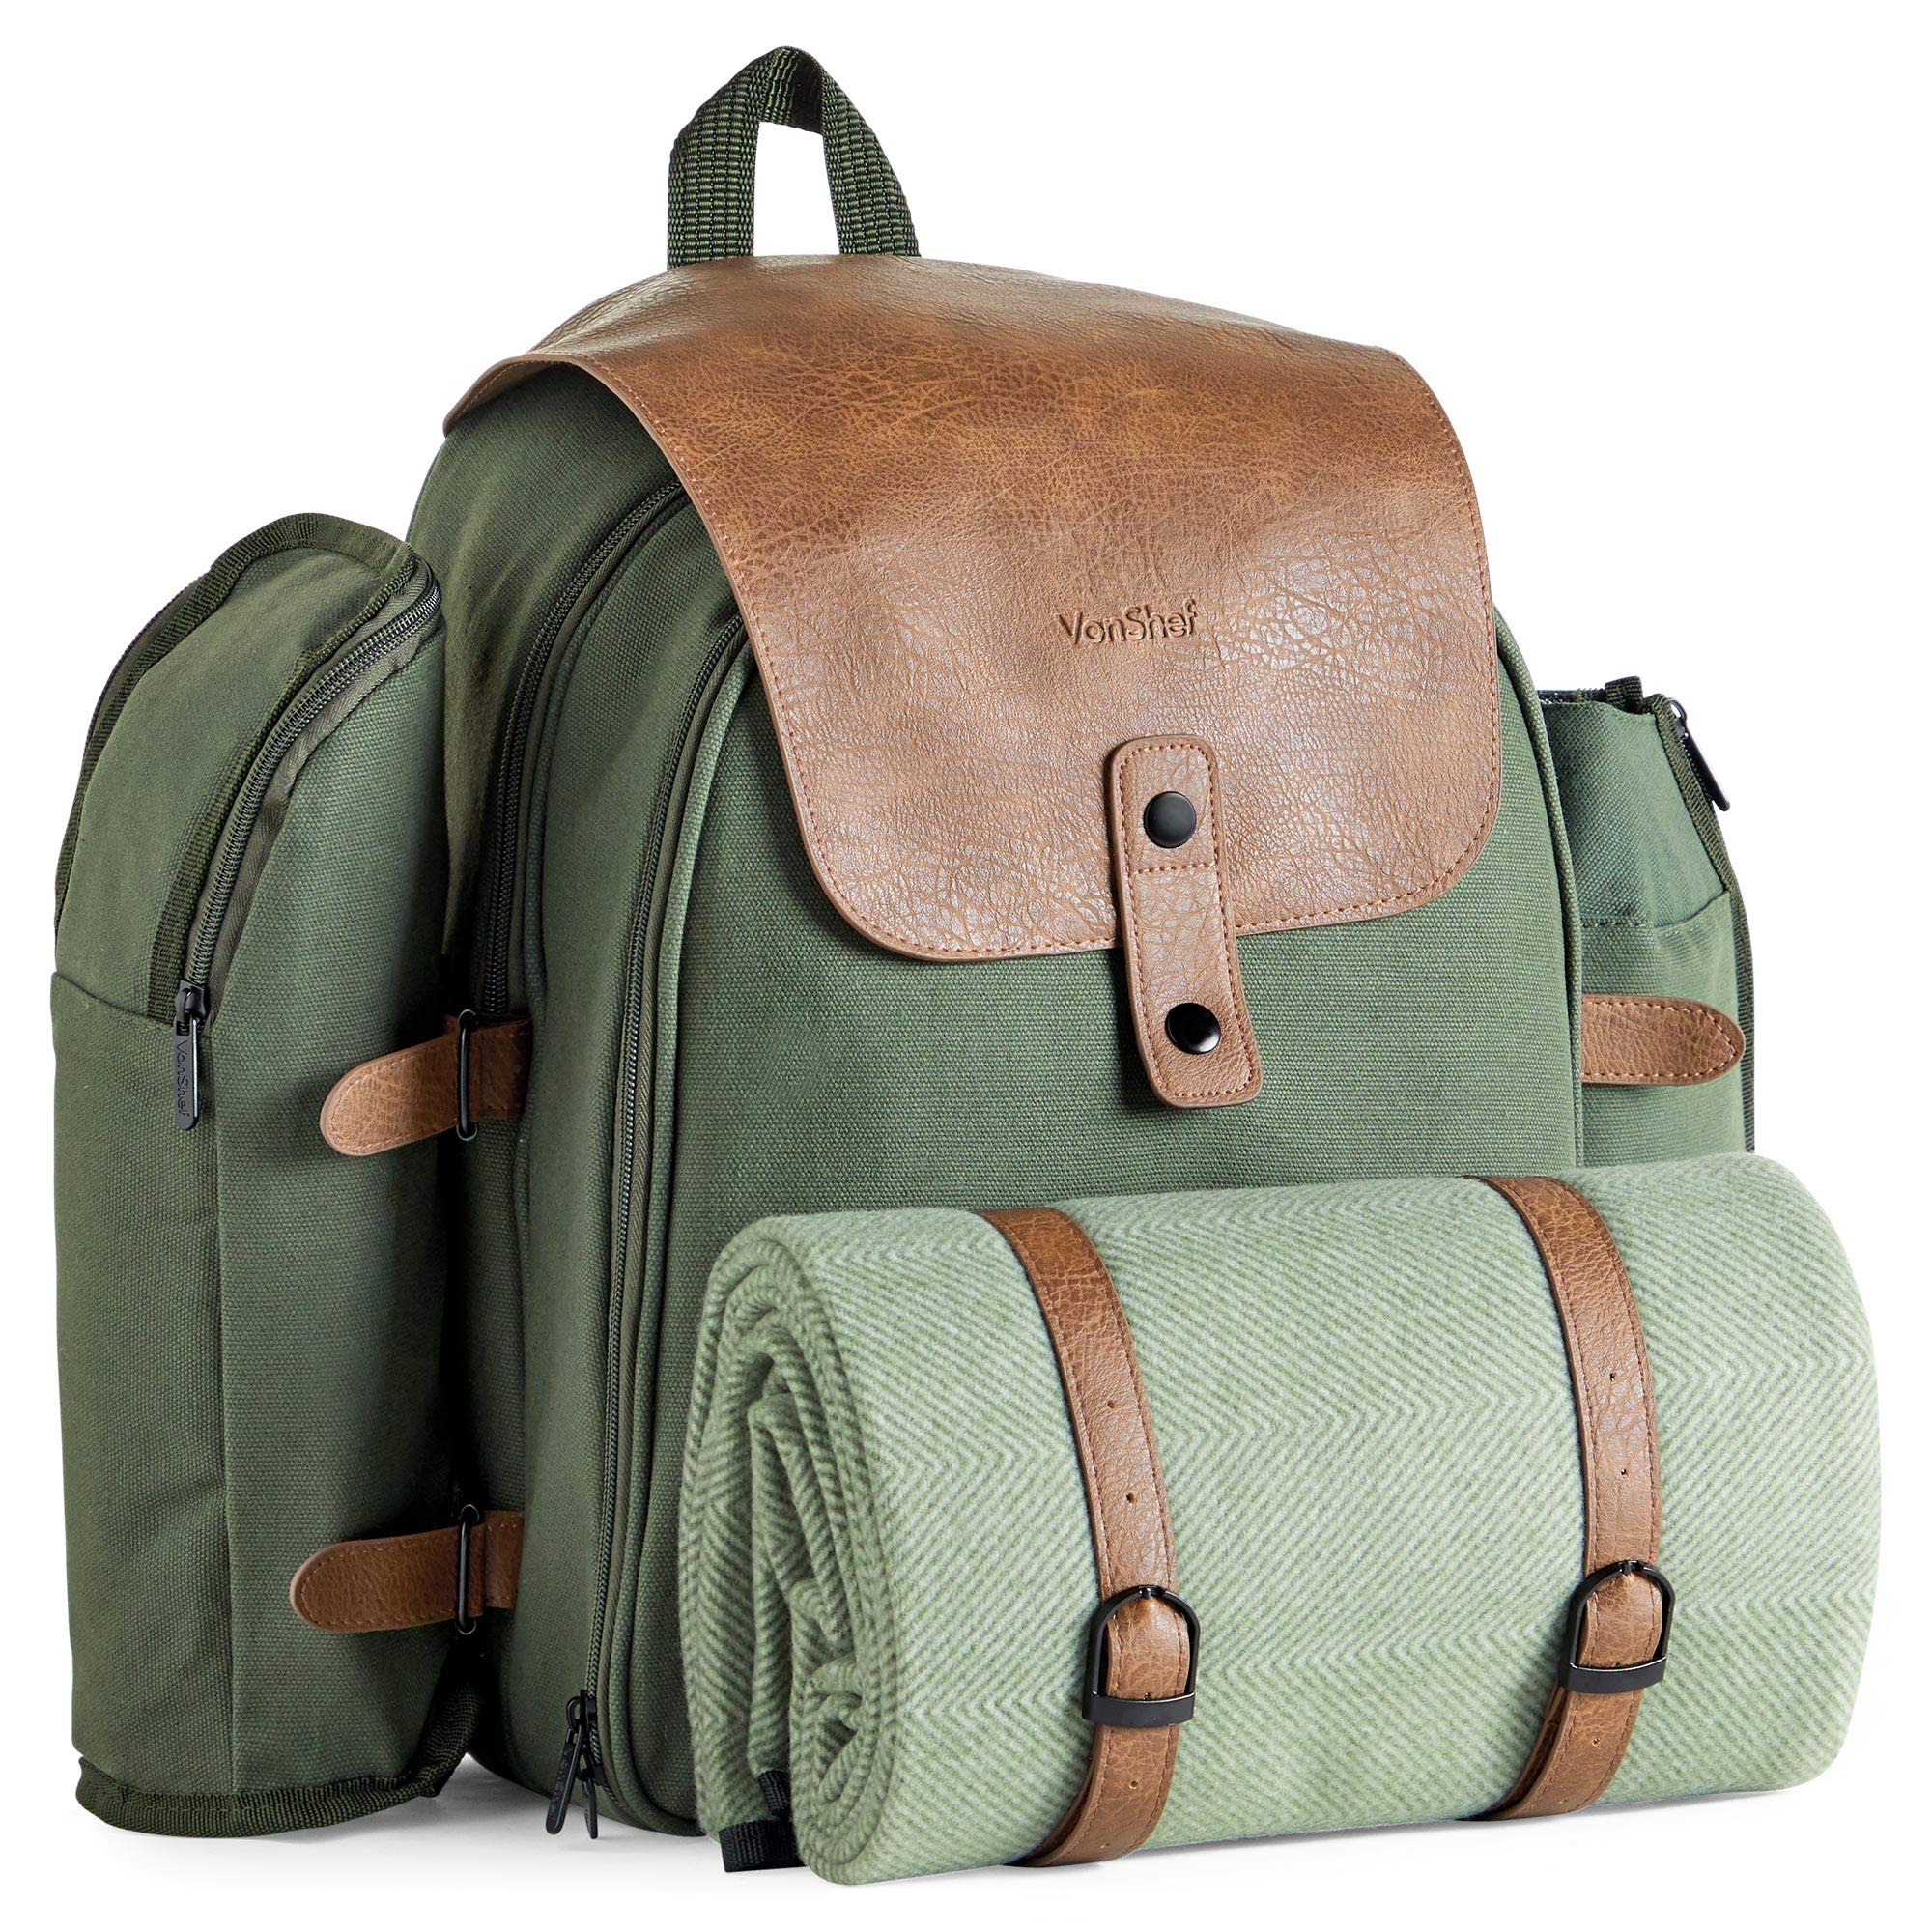 VonShef Large Picnic Backpack for 4 with Insulated Cooler Compartment - Picnic Set with Stainless Steel Cutlery, Picnic Blanket, Removable Bottle Holder and Wine Carrier - Green Adventure Backpack by VonShef